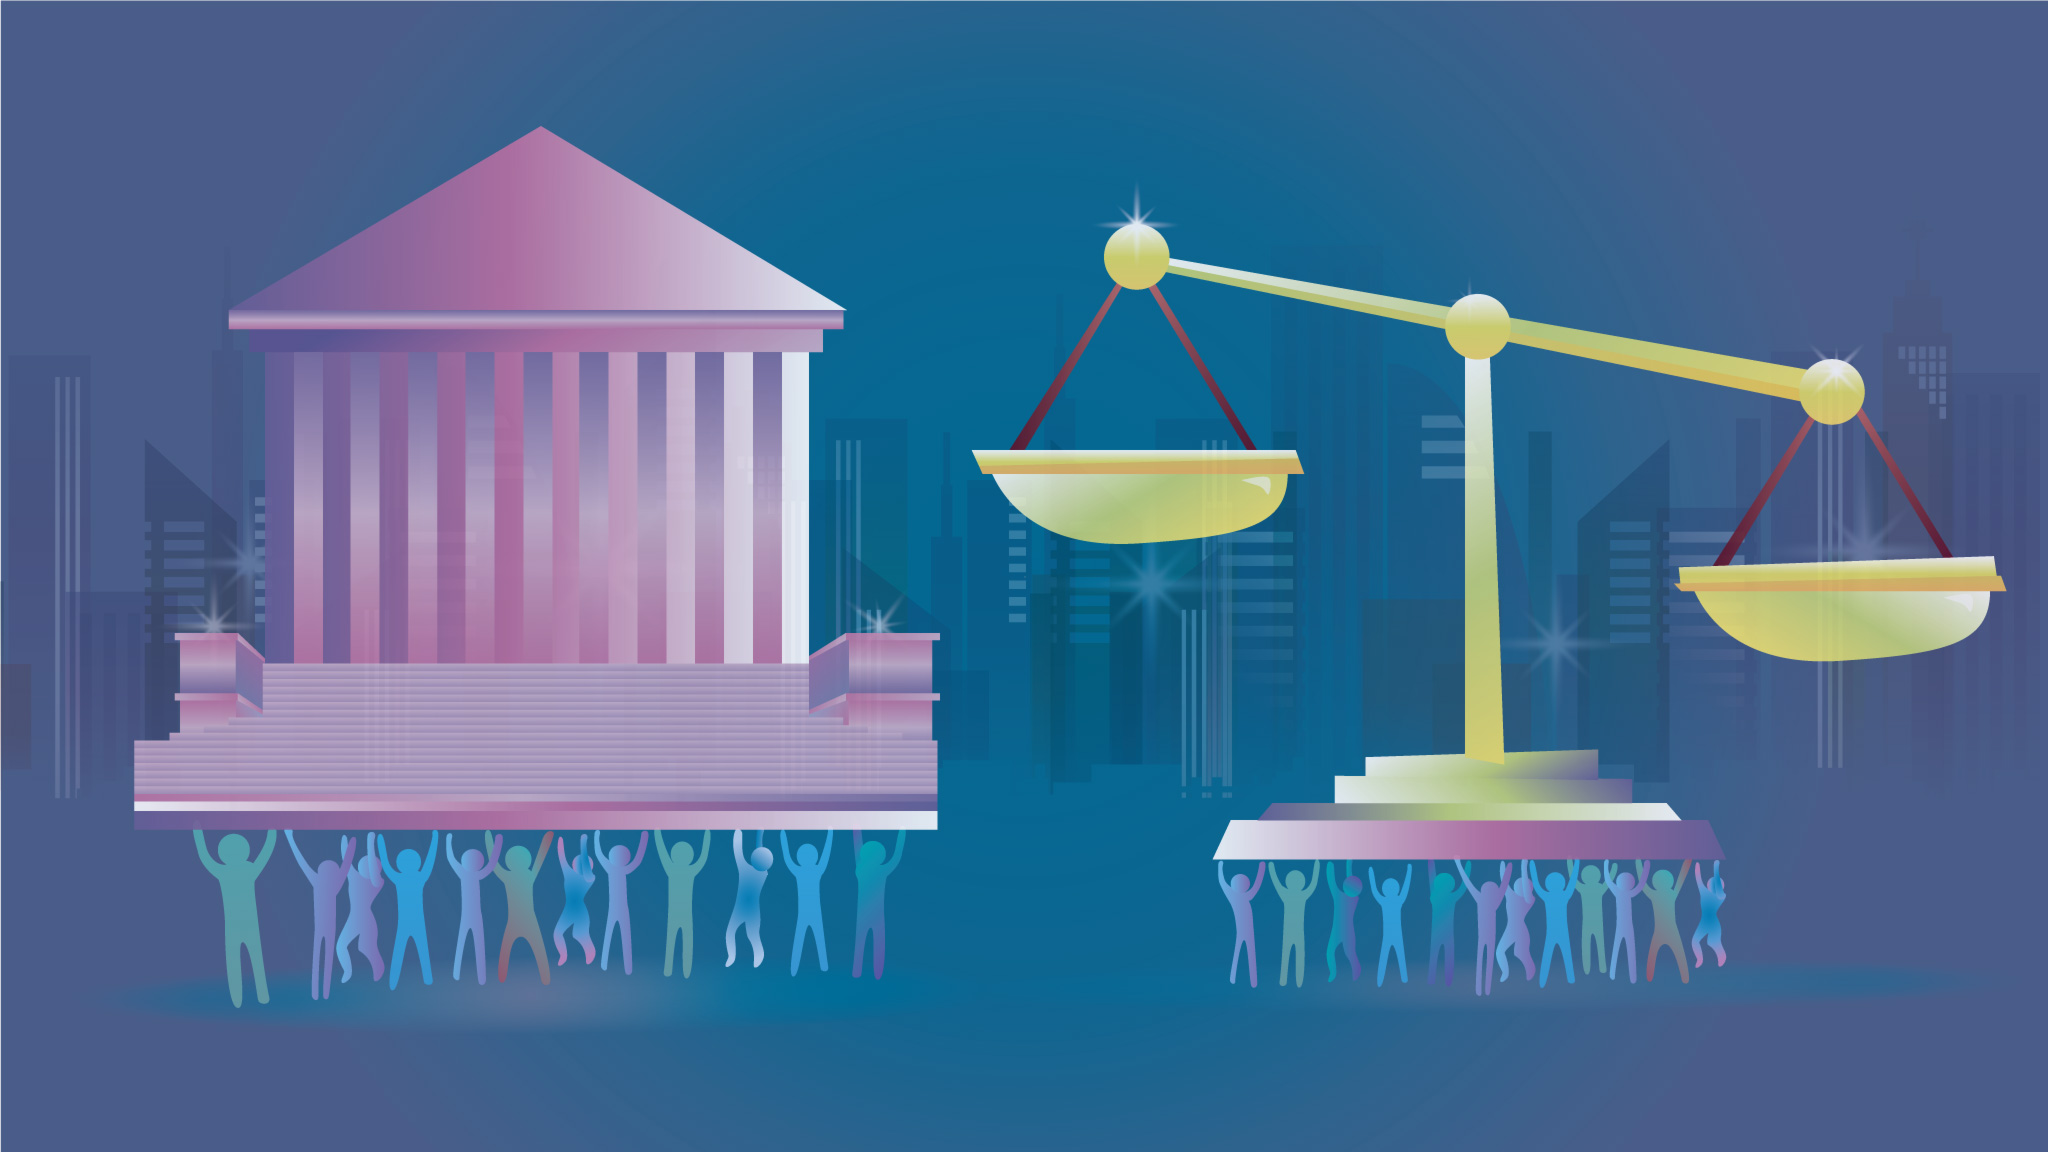 Protecting equal justice